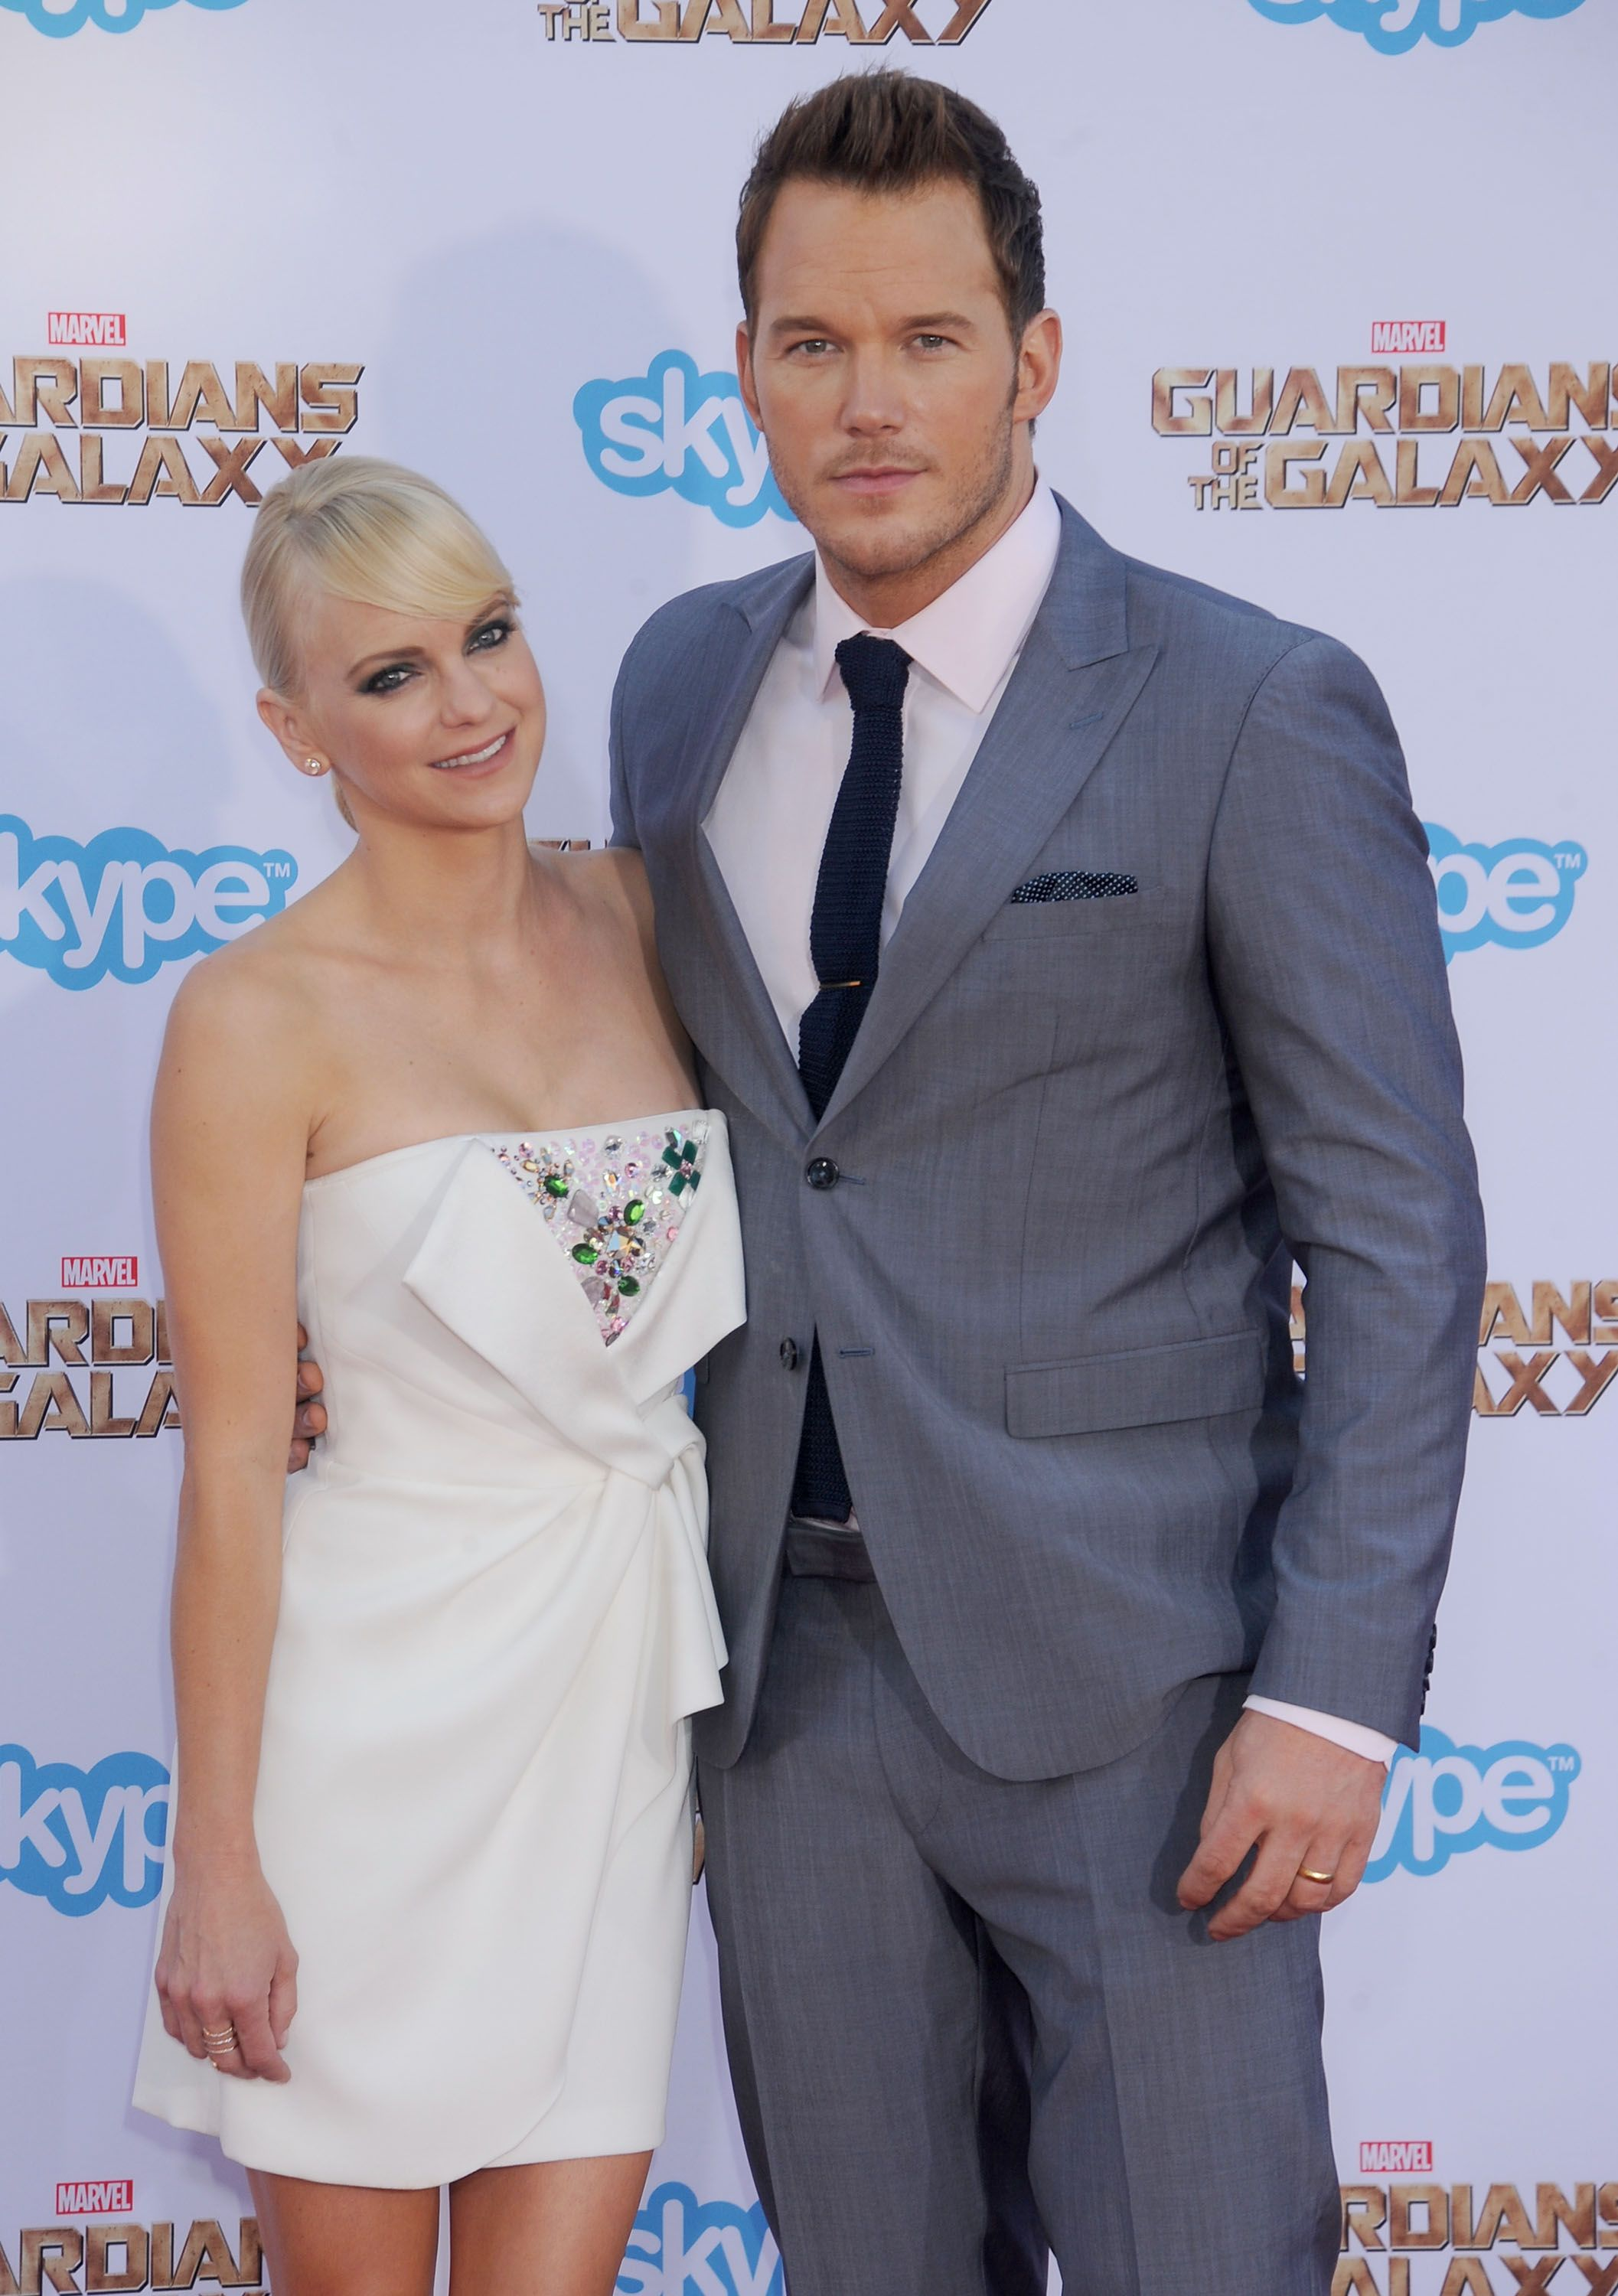 Chris Pratt and Anna Faris' son names penguin